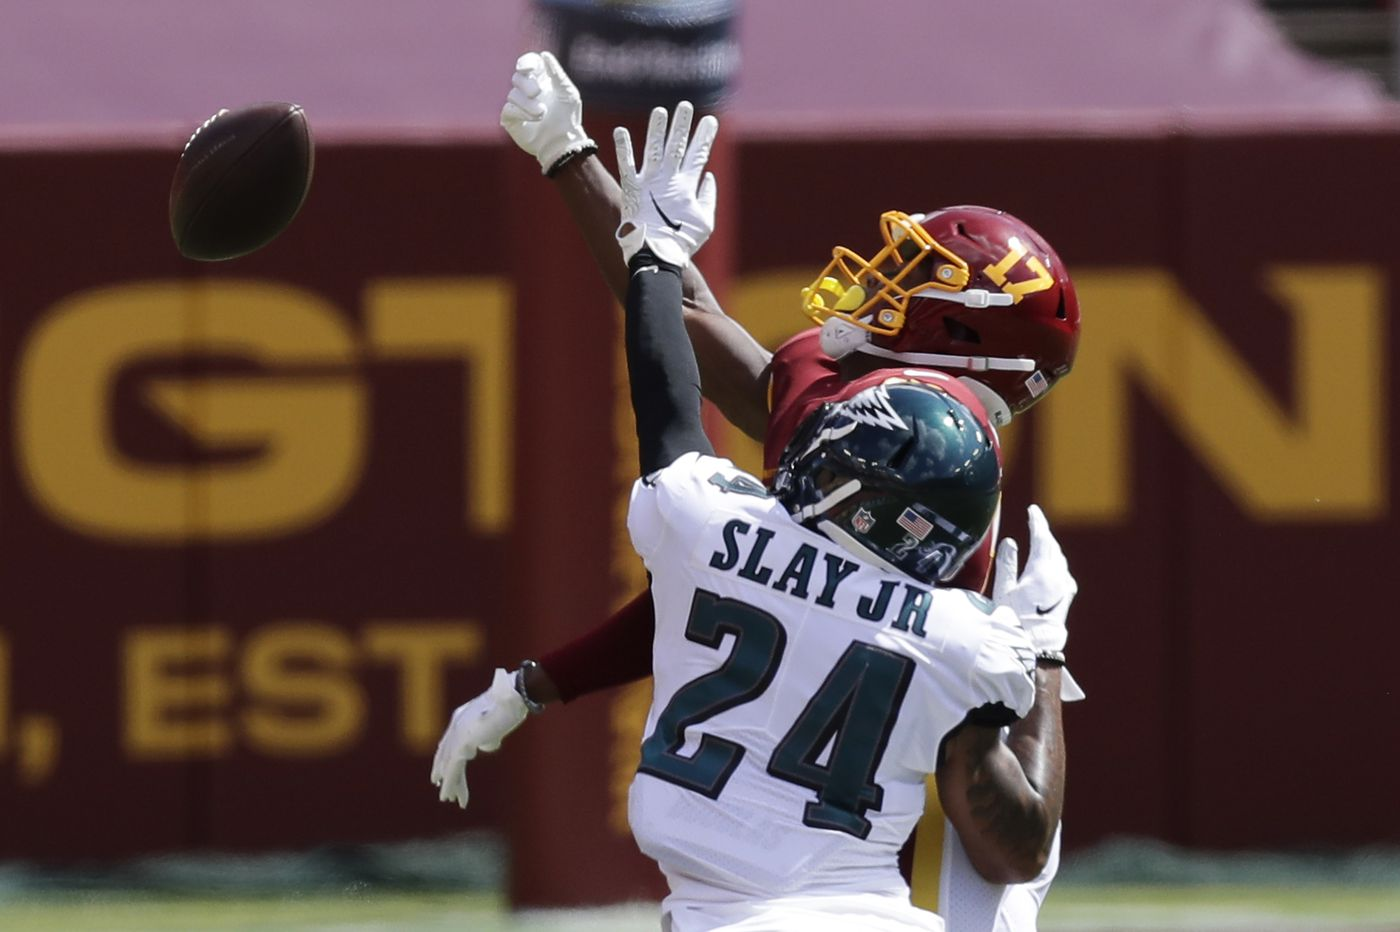 Eagles-49ers scouting report: With injuries piling up, the Birds travel cross-country looking for their first win